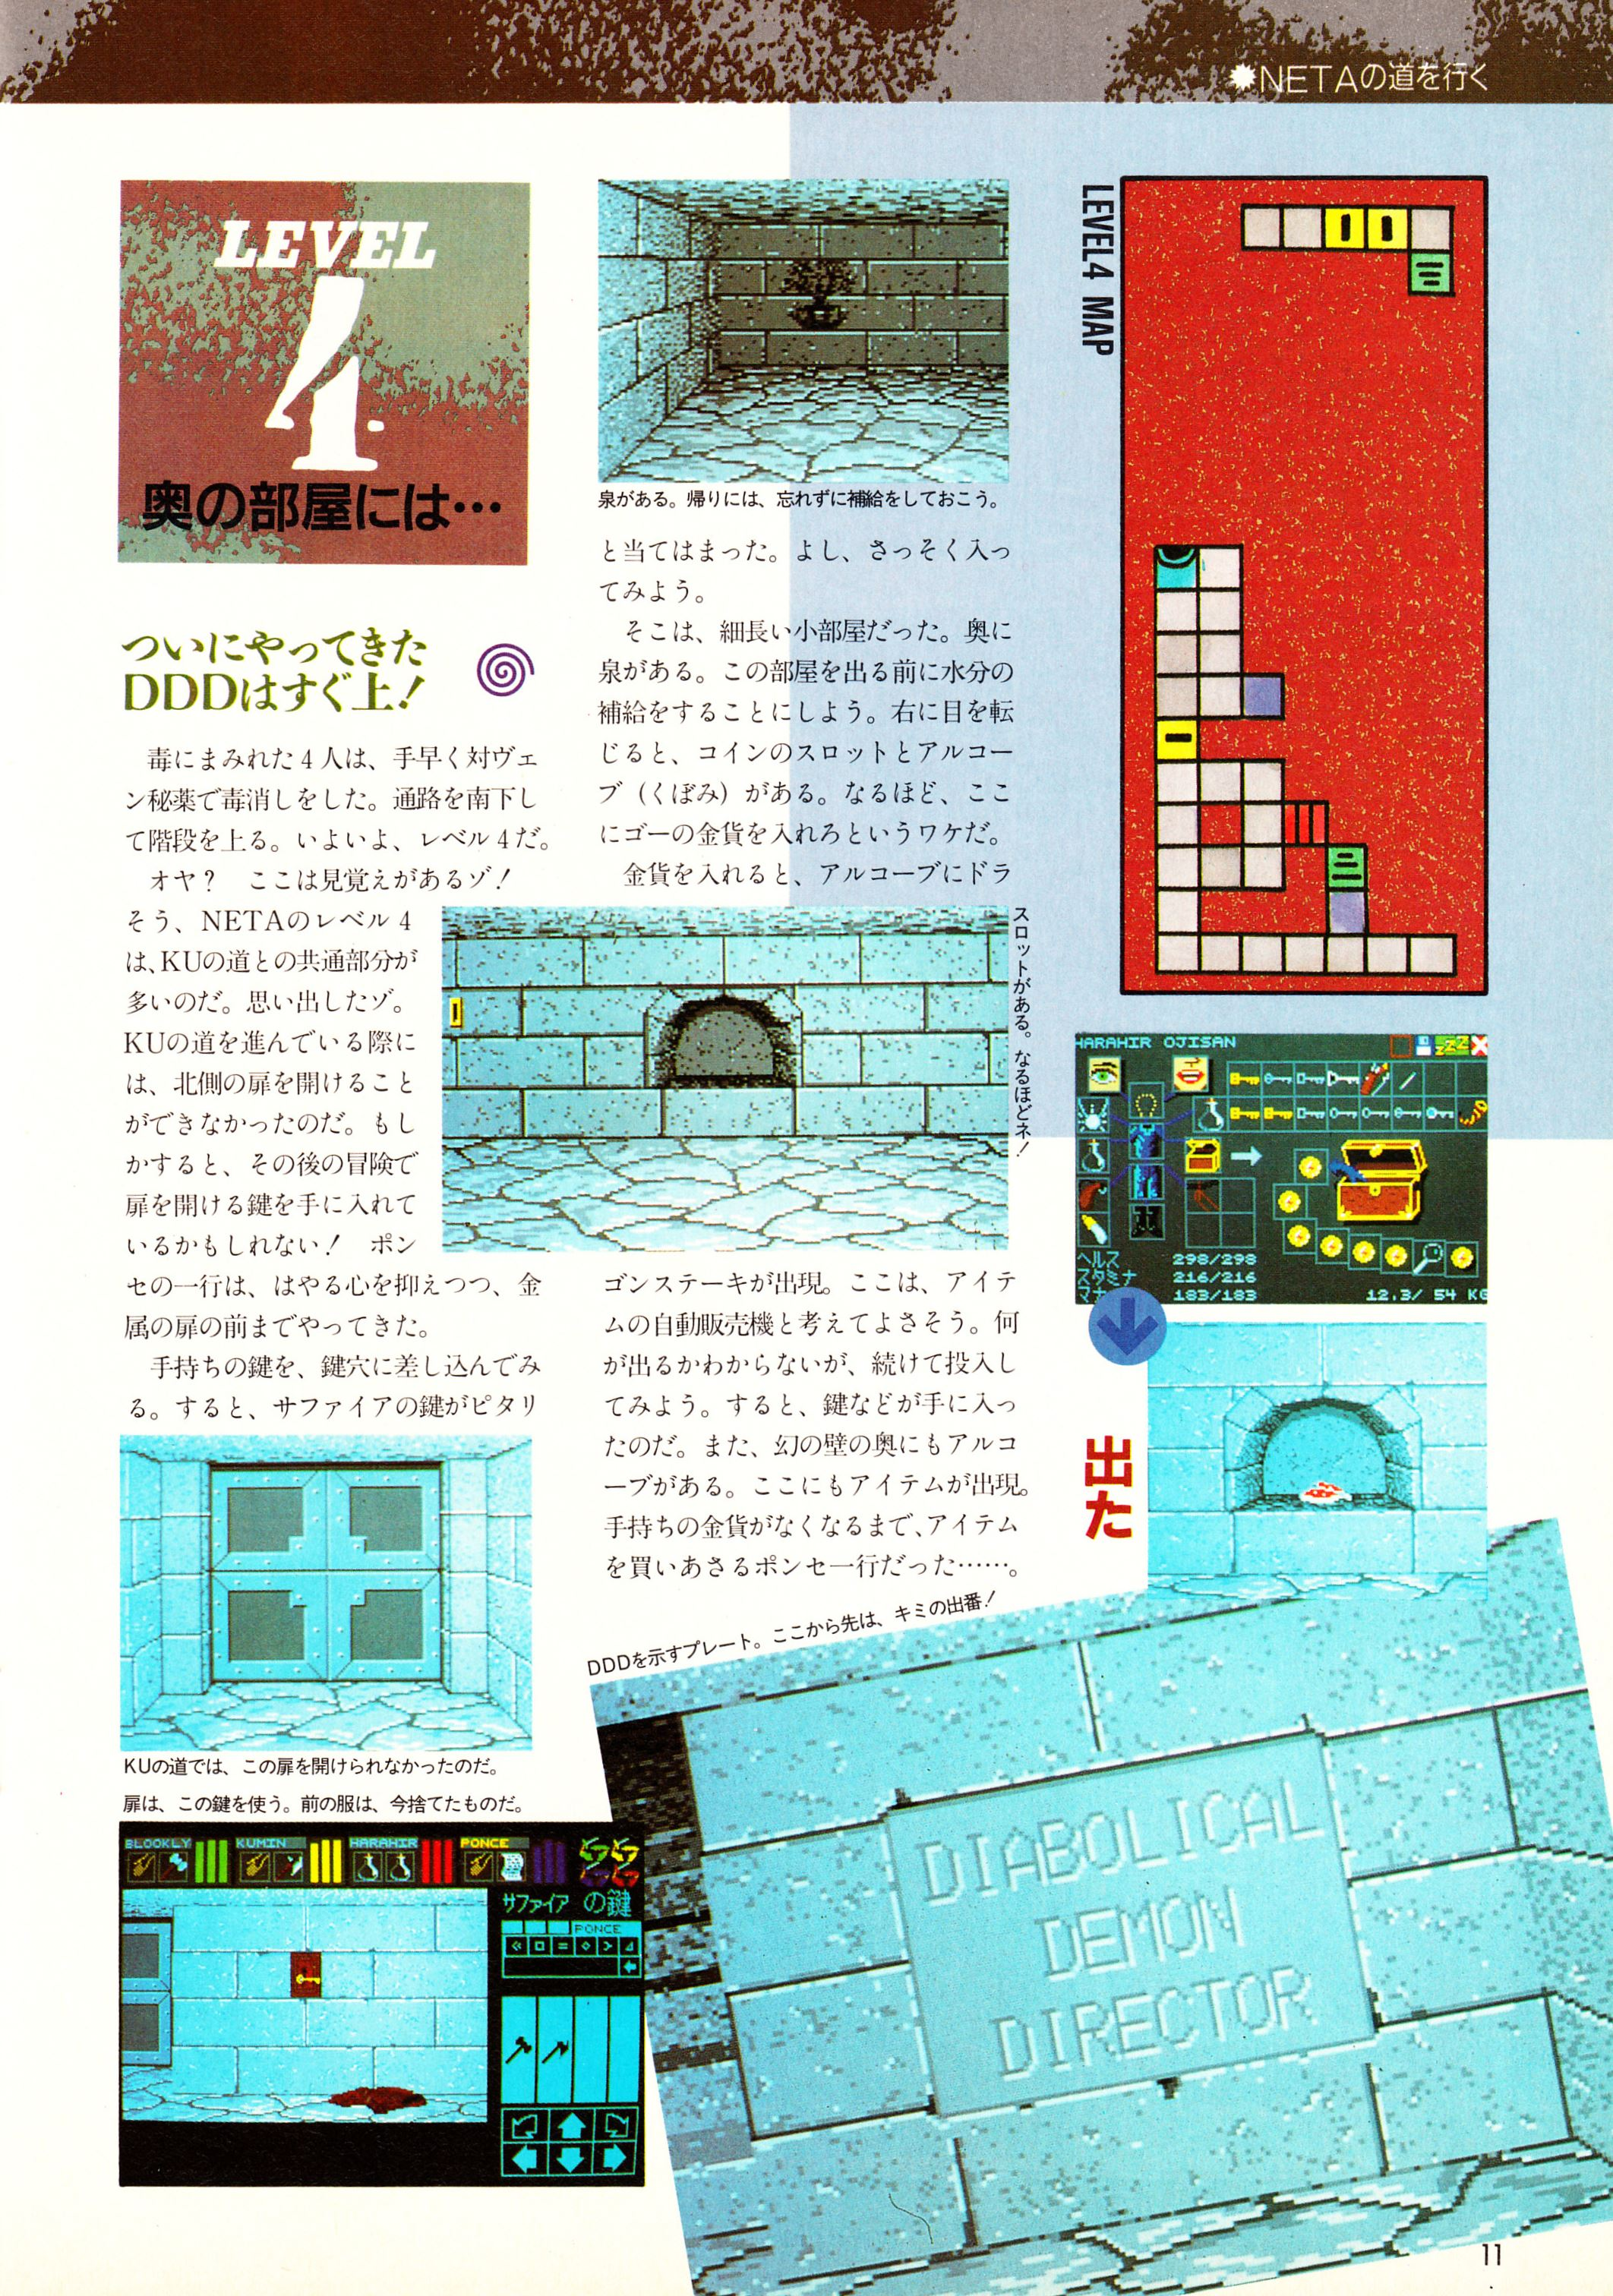 Supplement - Chaos Strikes Back Companion Guide II Guide published in Japanese magazine 'Popcom', Vol 9 No 3 01 March 1991, Page 13